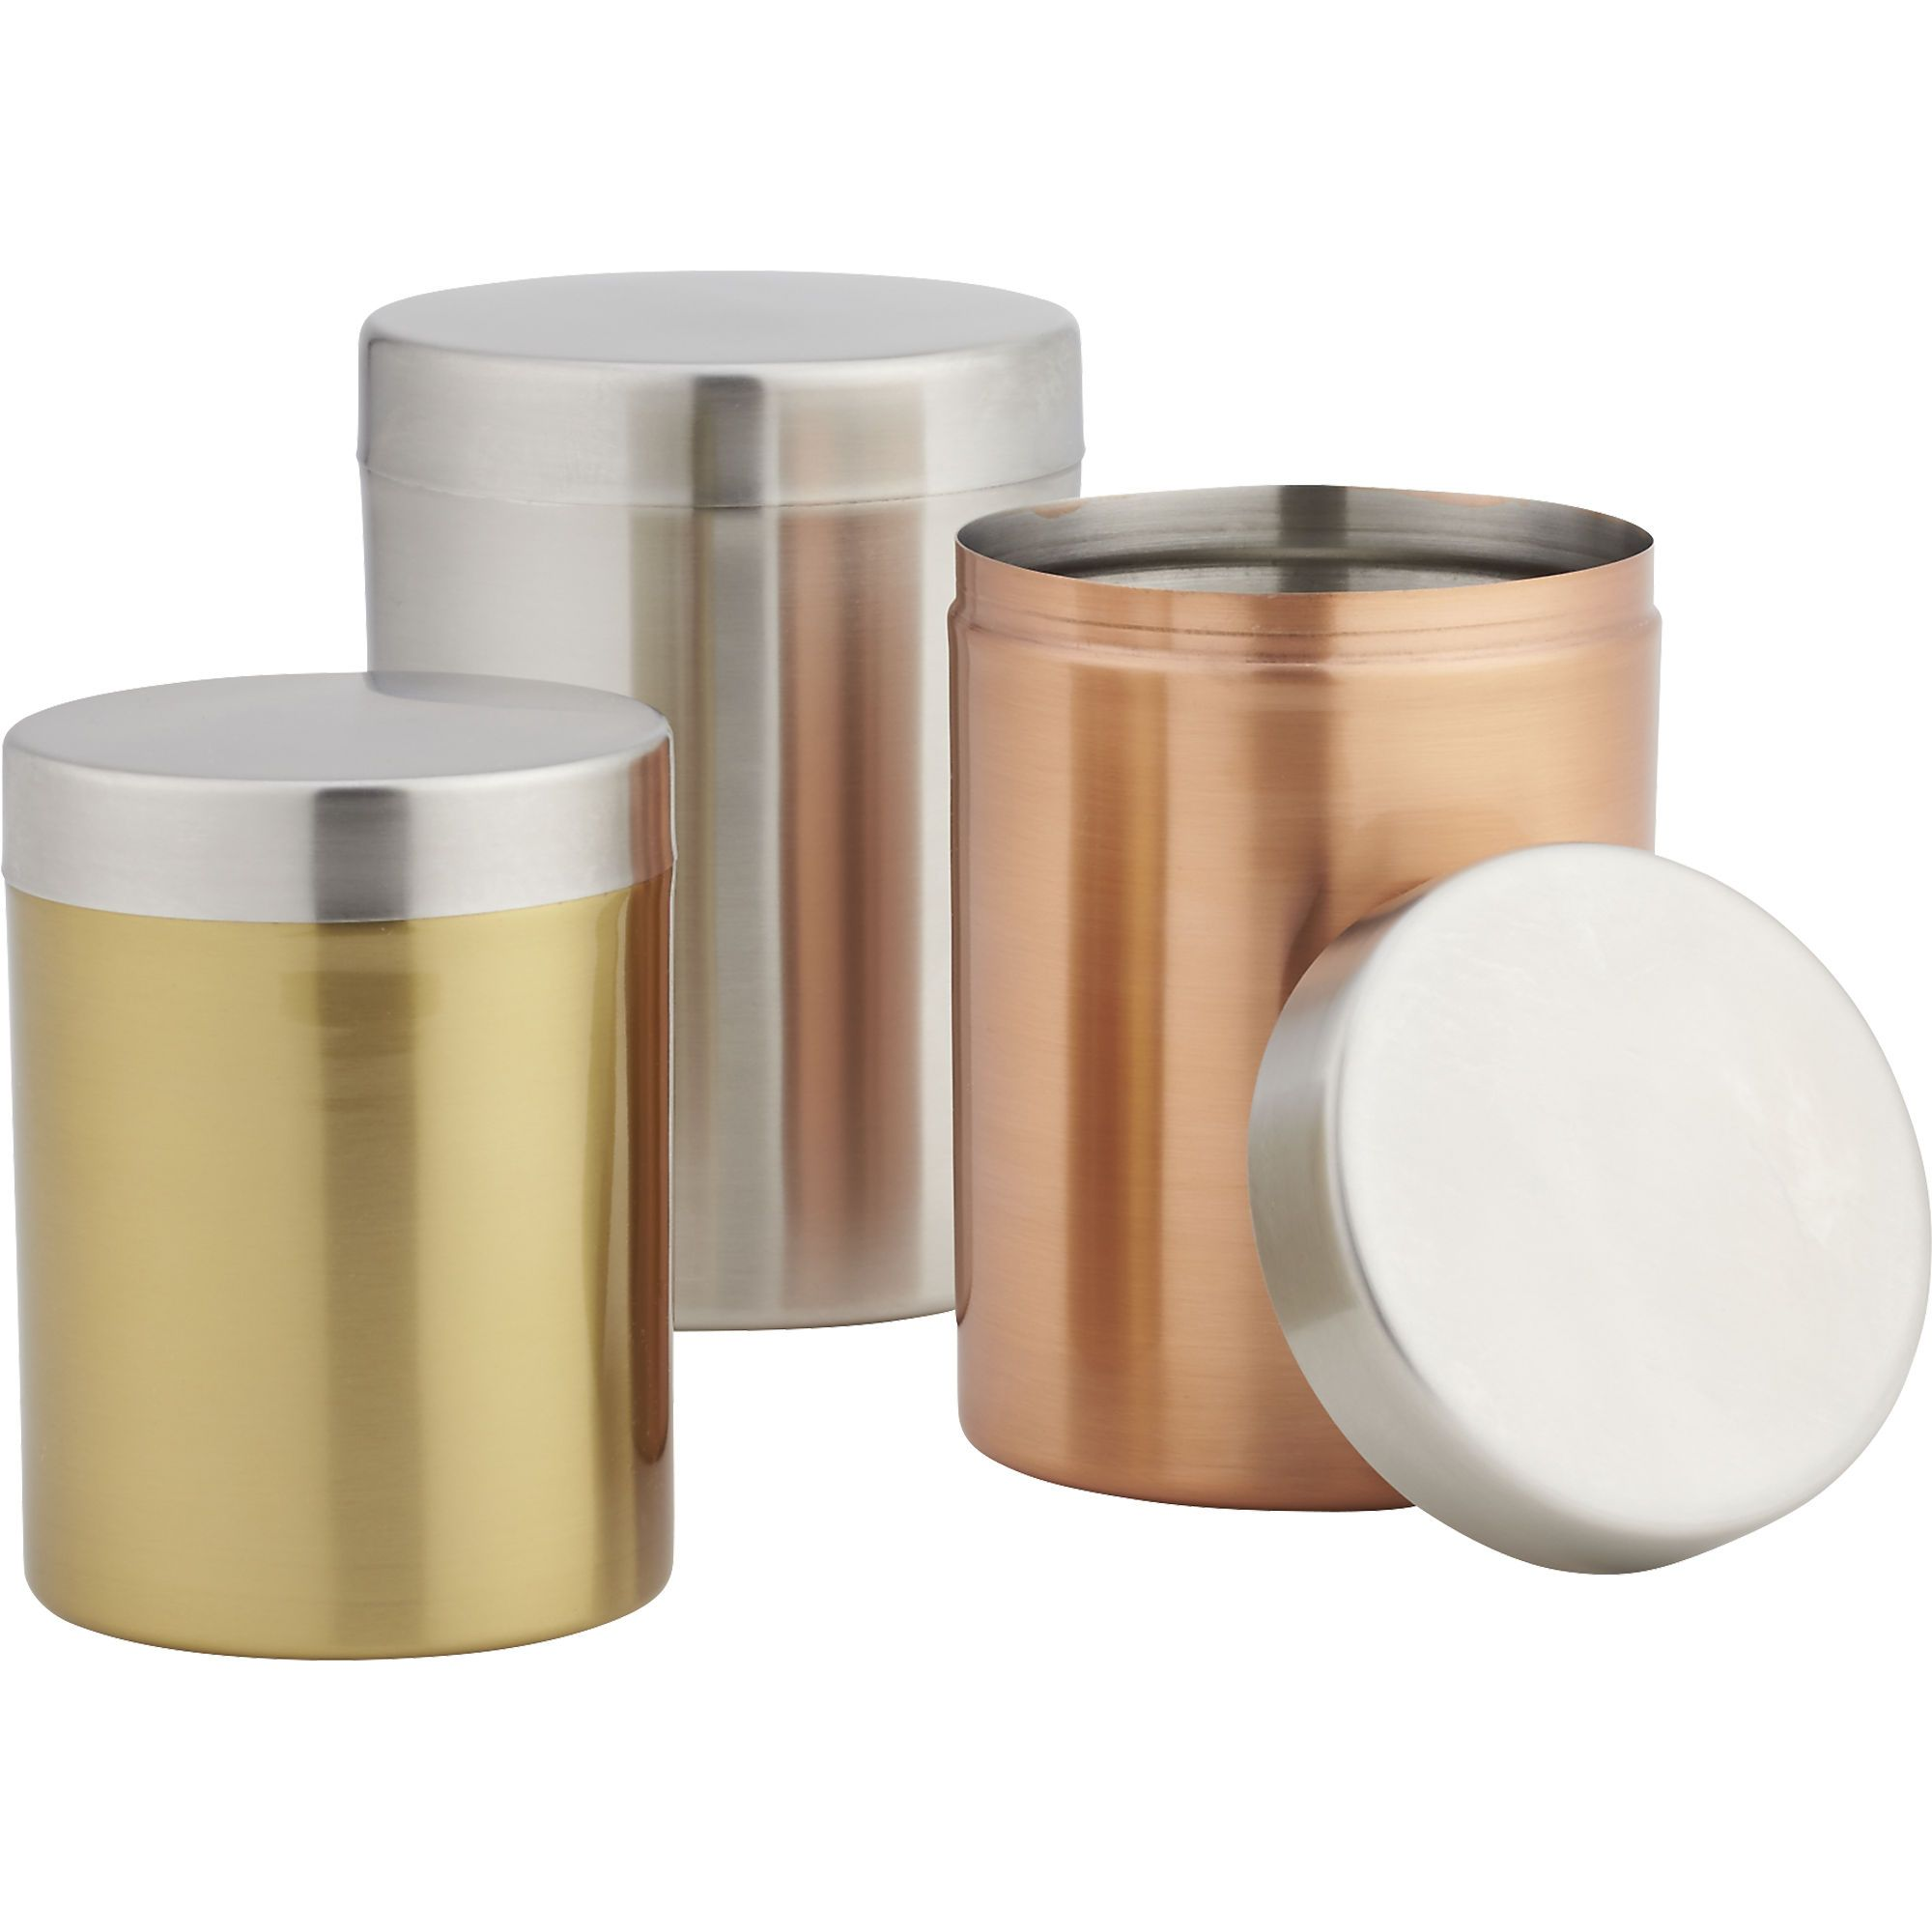 3-piece mixed metal canister set    CB2